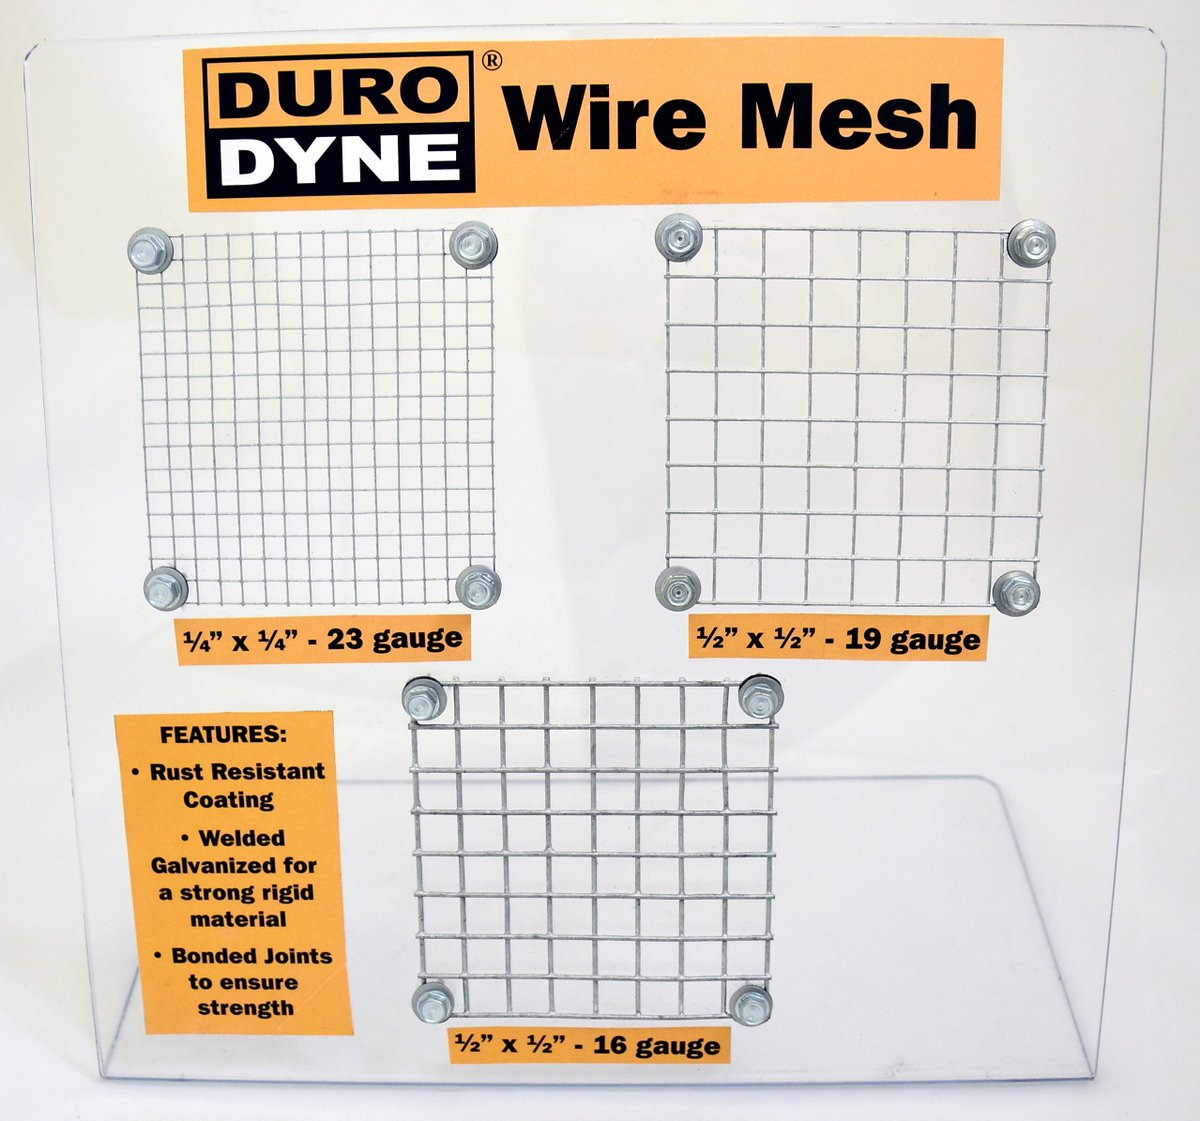 Awesome wire mesh size chart vignette electrical diagram ideas beautiful wire mesh gauge chart contemporary wiring diagram ideas keyboard keysfo Gallery